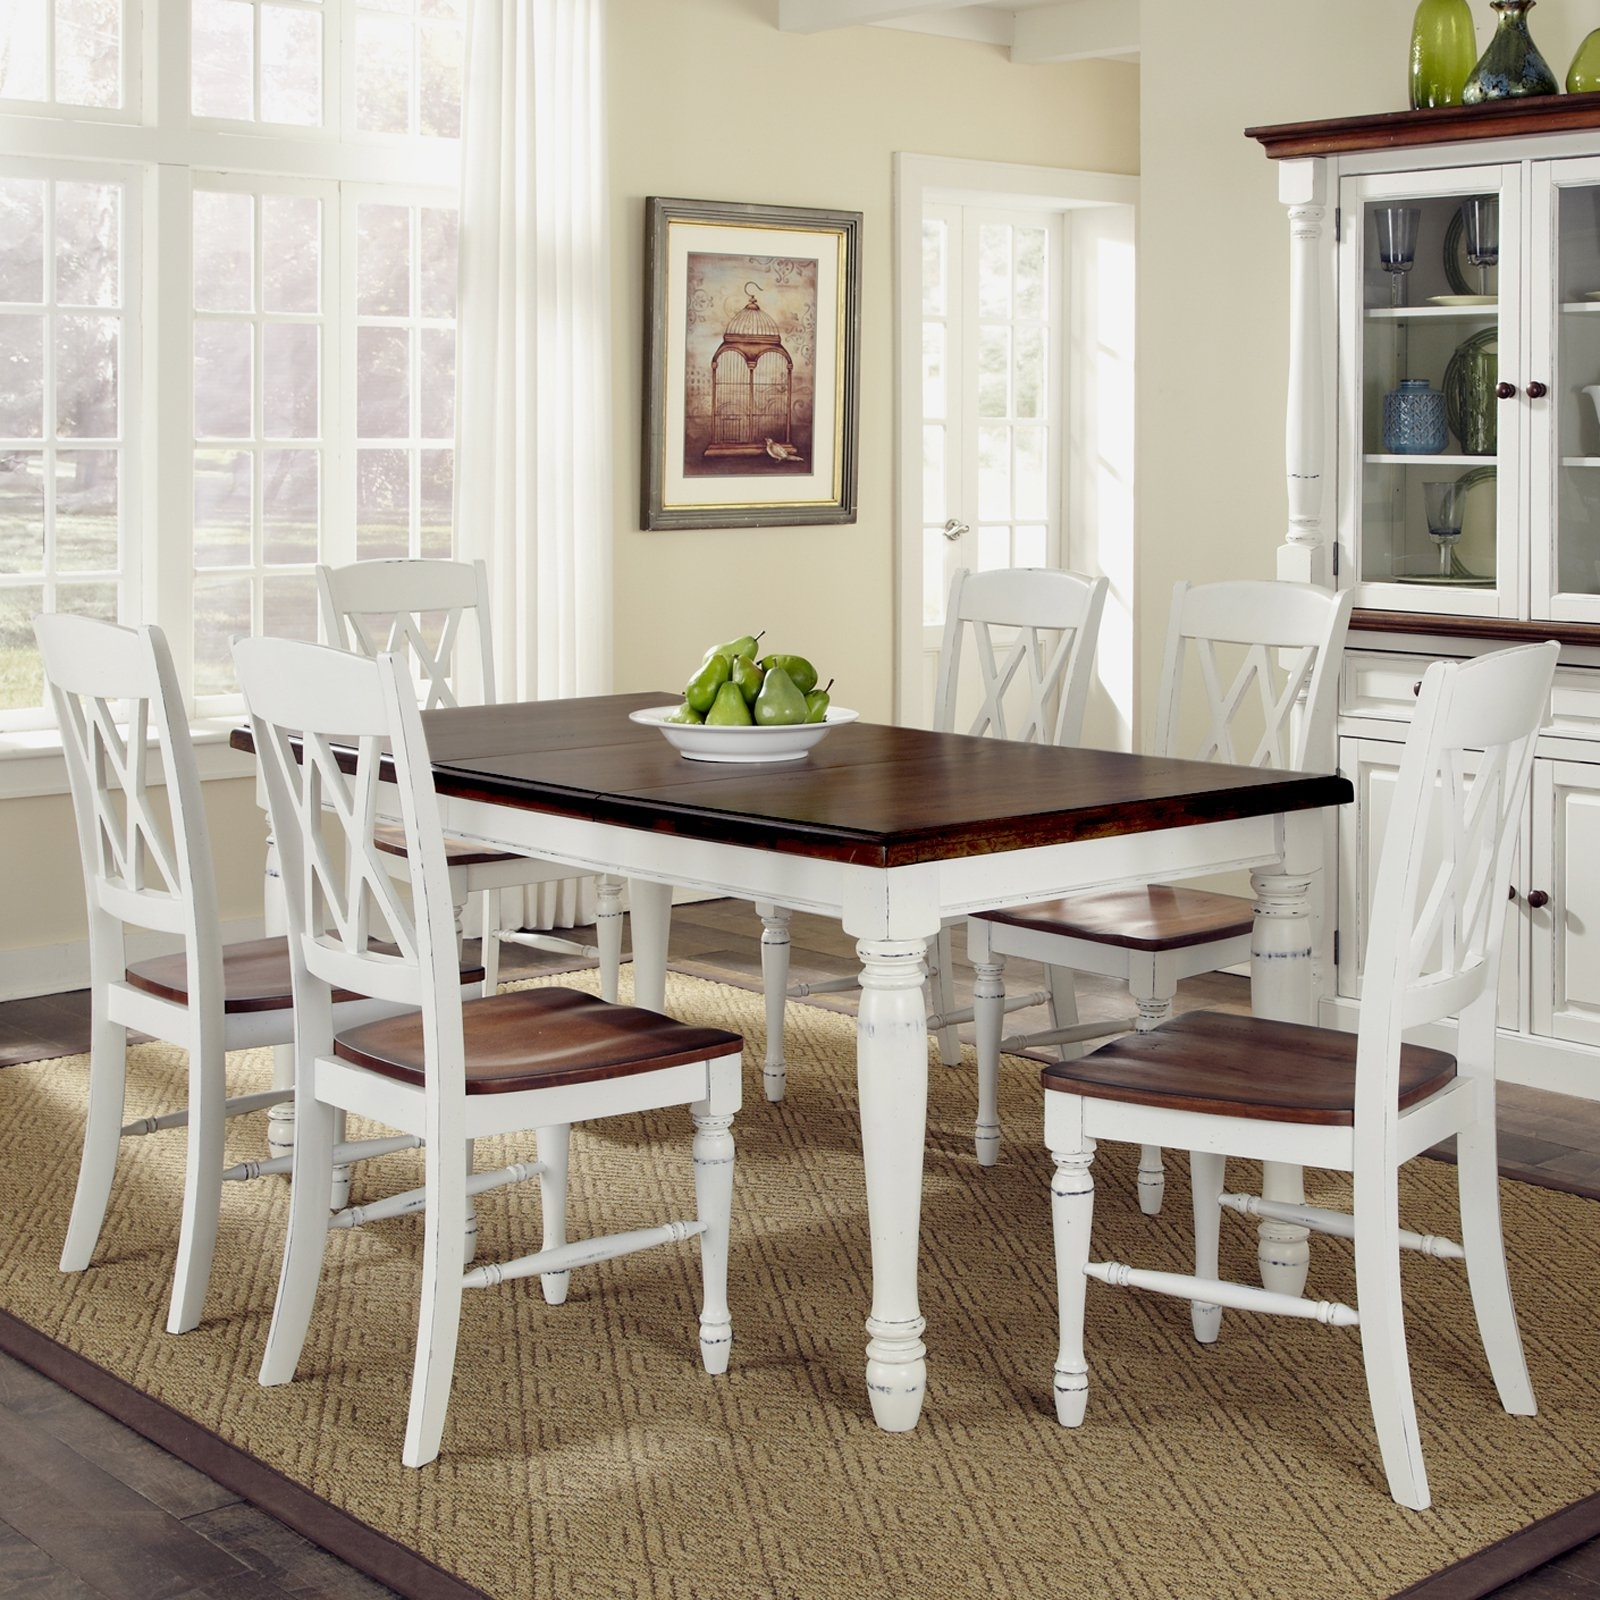 Latest Home Styles Monarch Rectangular Dining Table And 6 Double X Back For Dining Table Sets With 6 Chairs (View 18 of 25)